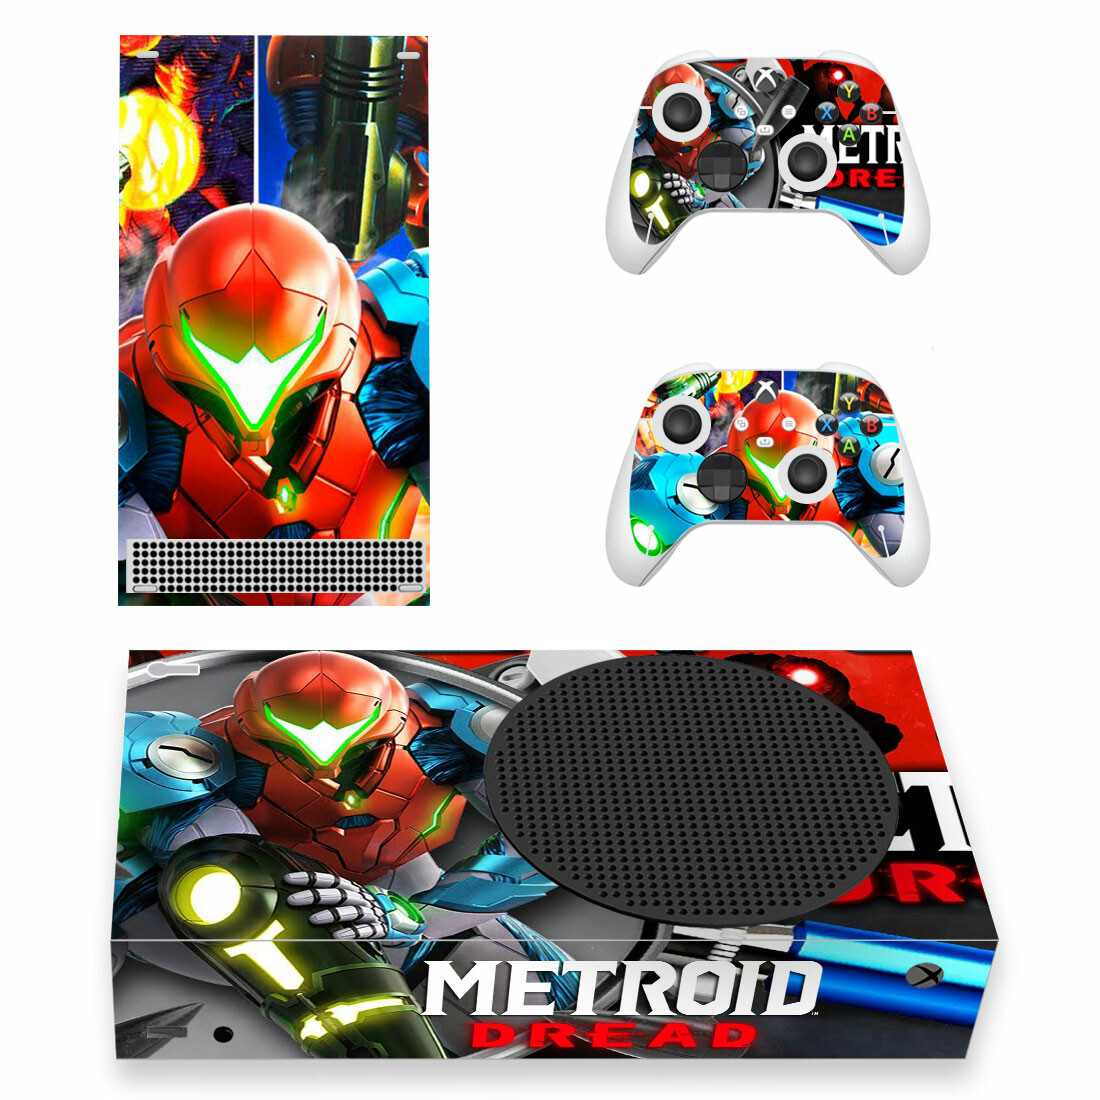 Metroid Dread Skin Sticker For Xbox Series S And Controllers